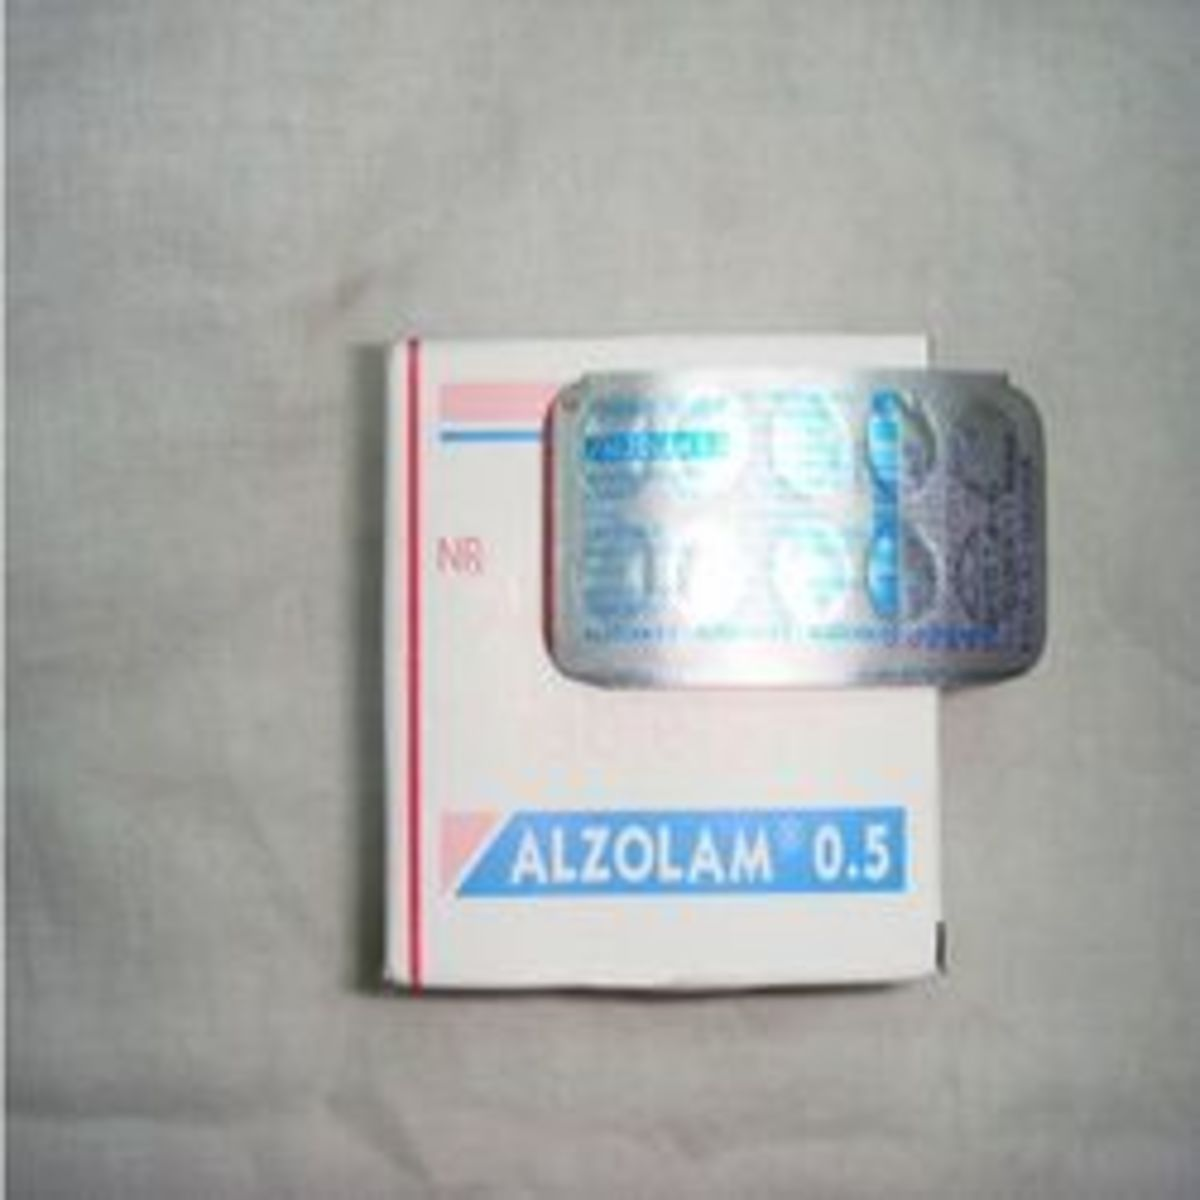 Alzolam uses and side effects